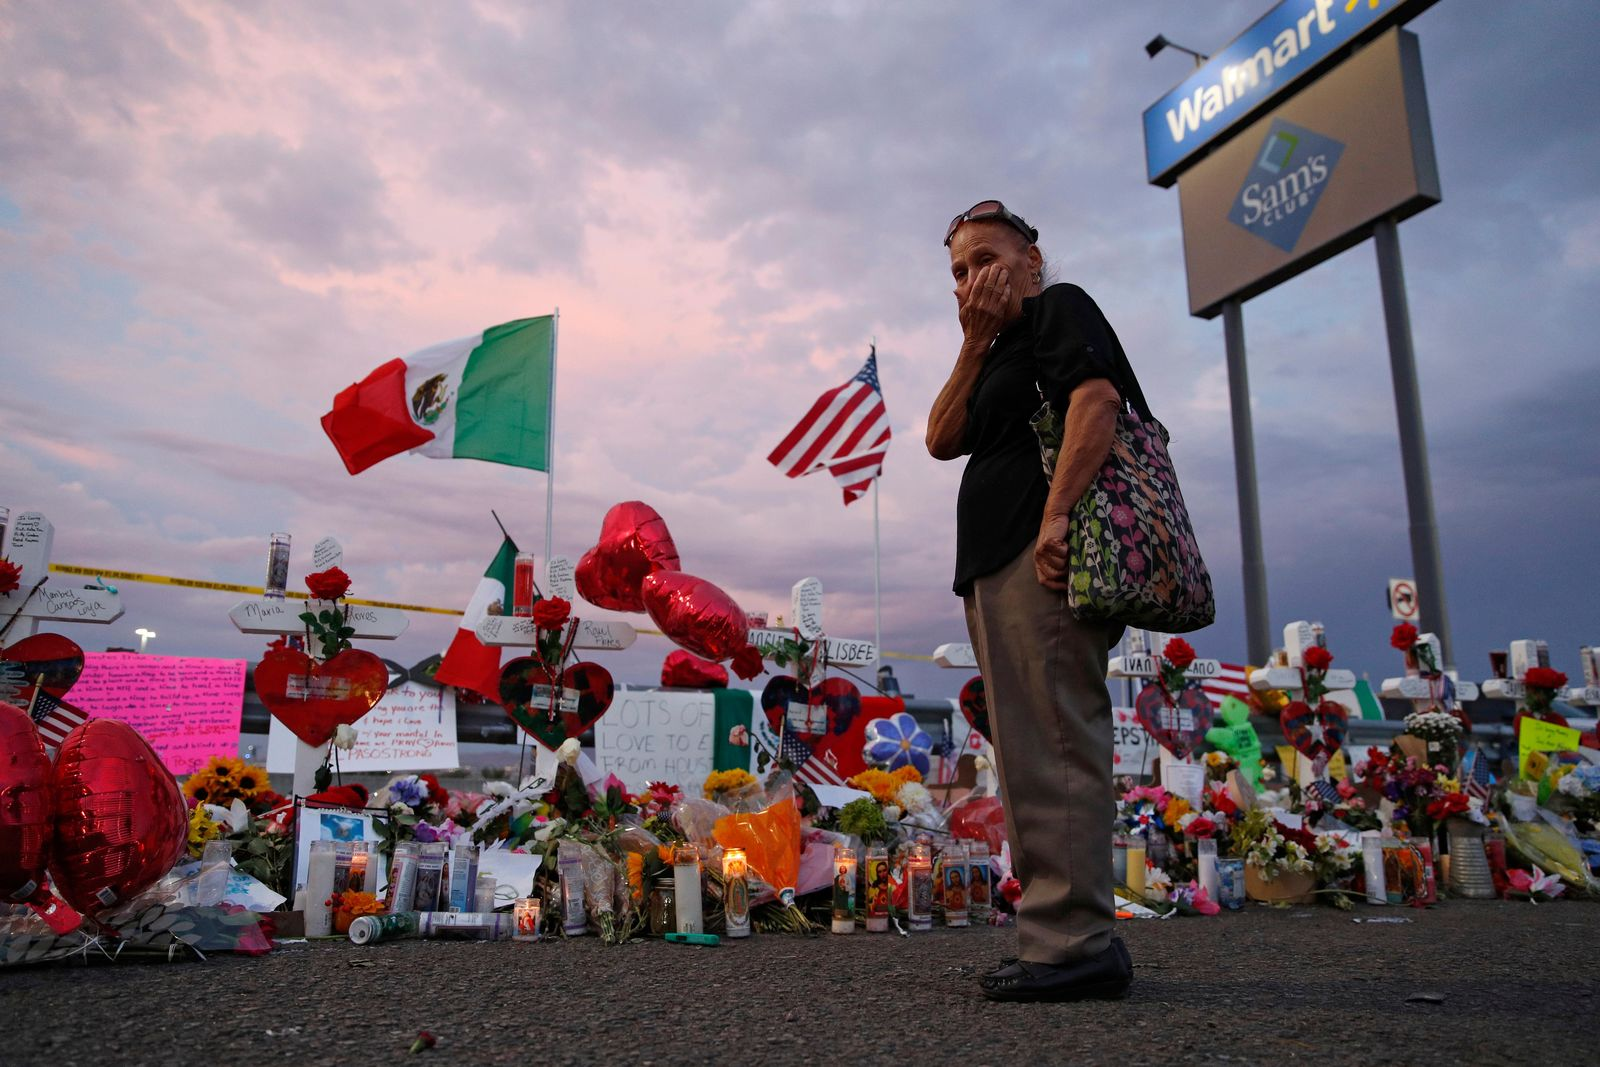 Catalina Saenz wipes tears from her face as she visits a makeshift memorial near the scene of a mass shooting at a shopping complex Tuesday, Aug. 6, 2019, in El Paso, Texas. (AP Photo/John Locher)